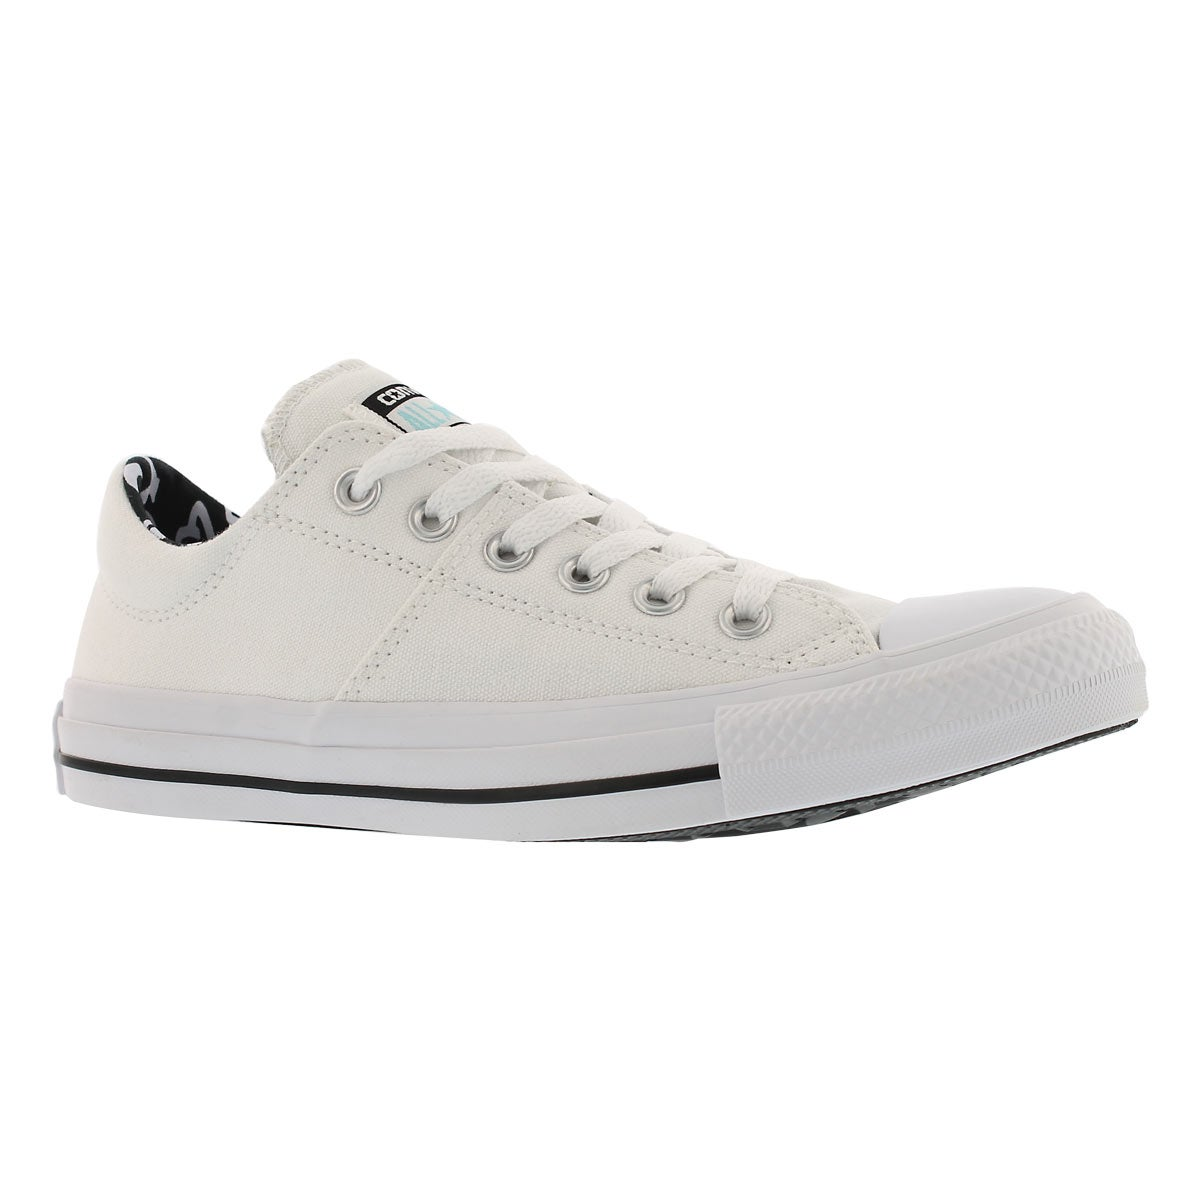 Women's CT ALL STAR MADISON wht/blk sneakers